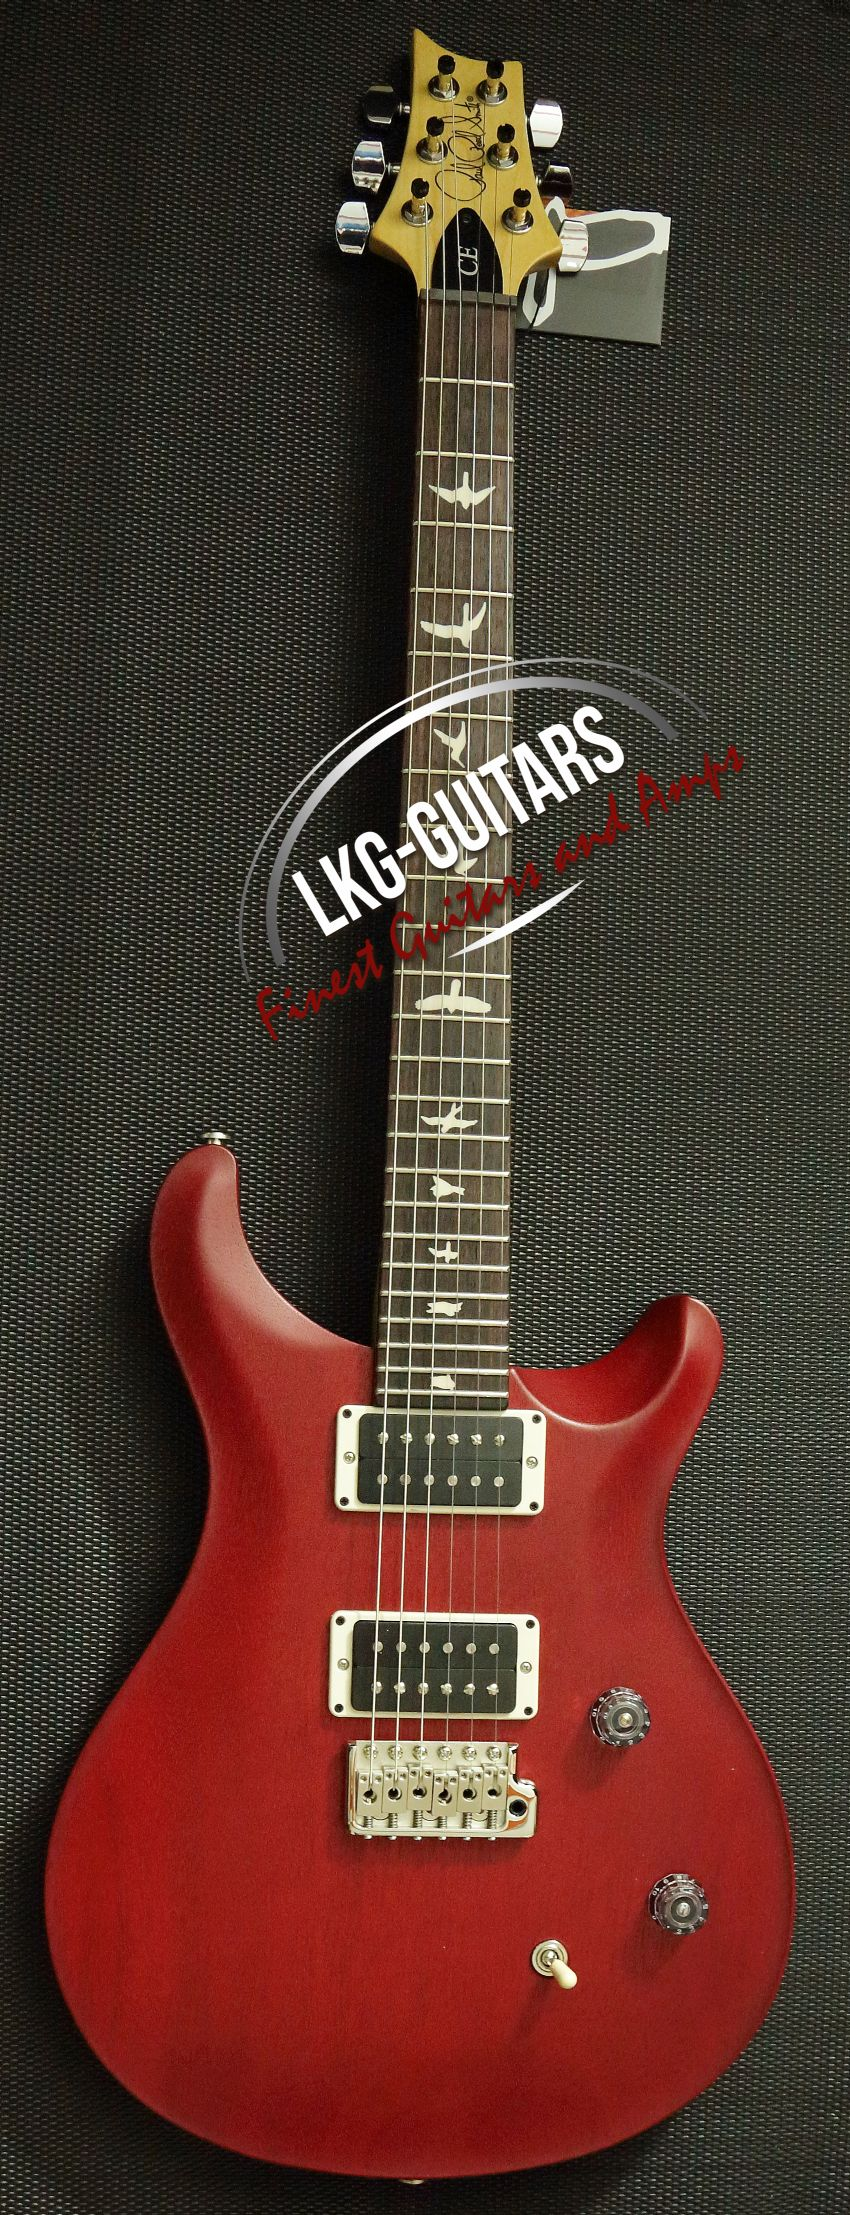 Paul Reed Smith Prs Ce 24 Standard Satin Vintage Cherry